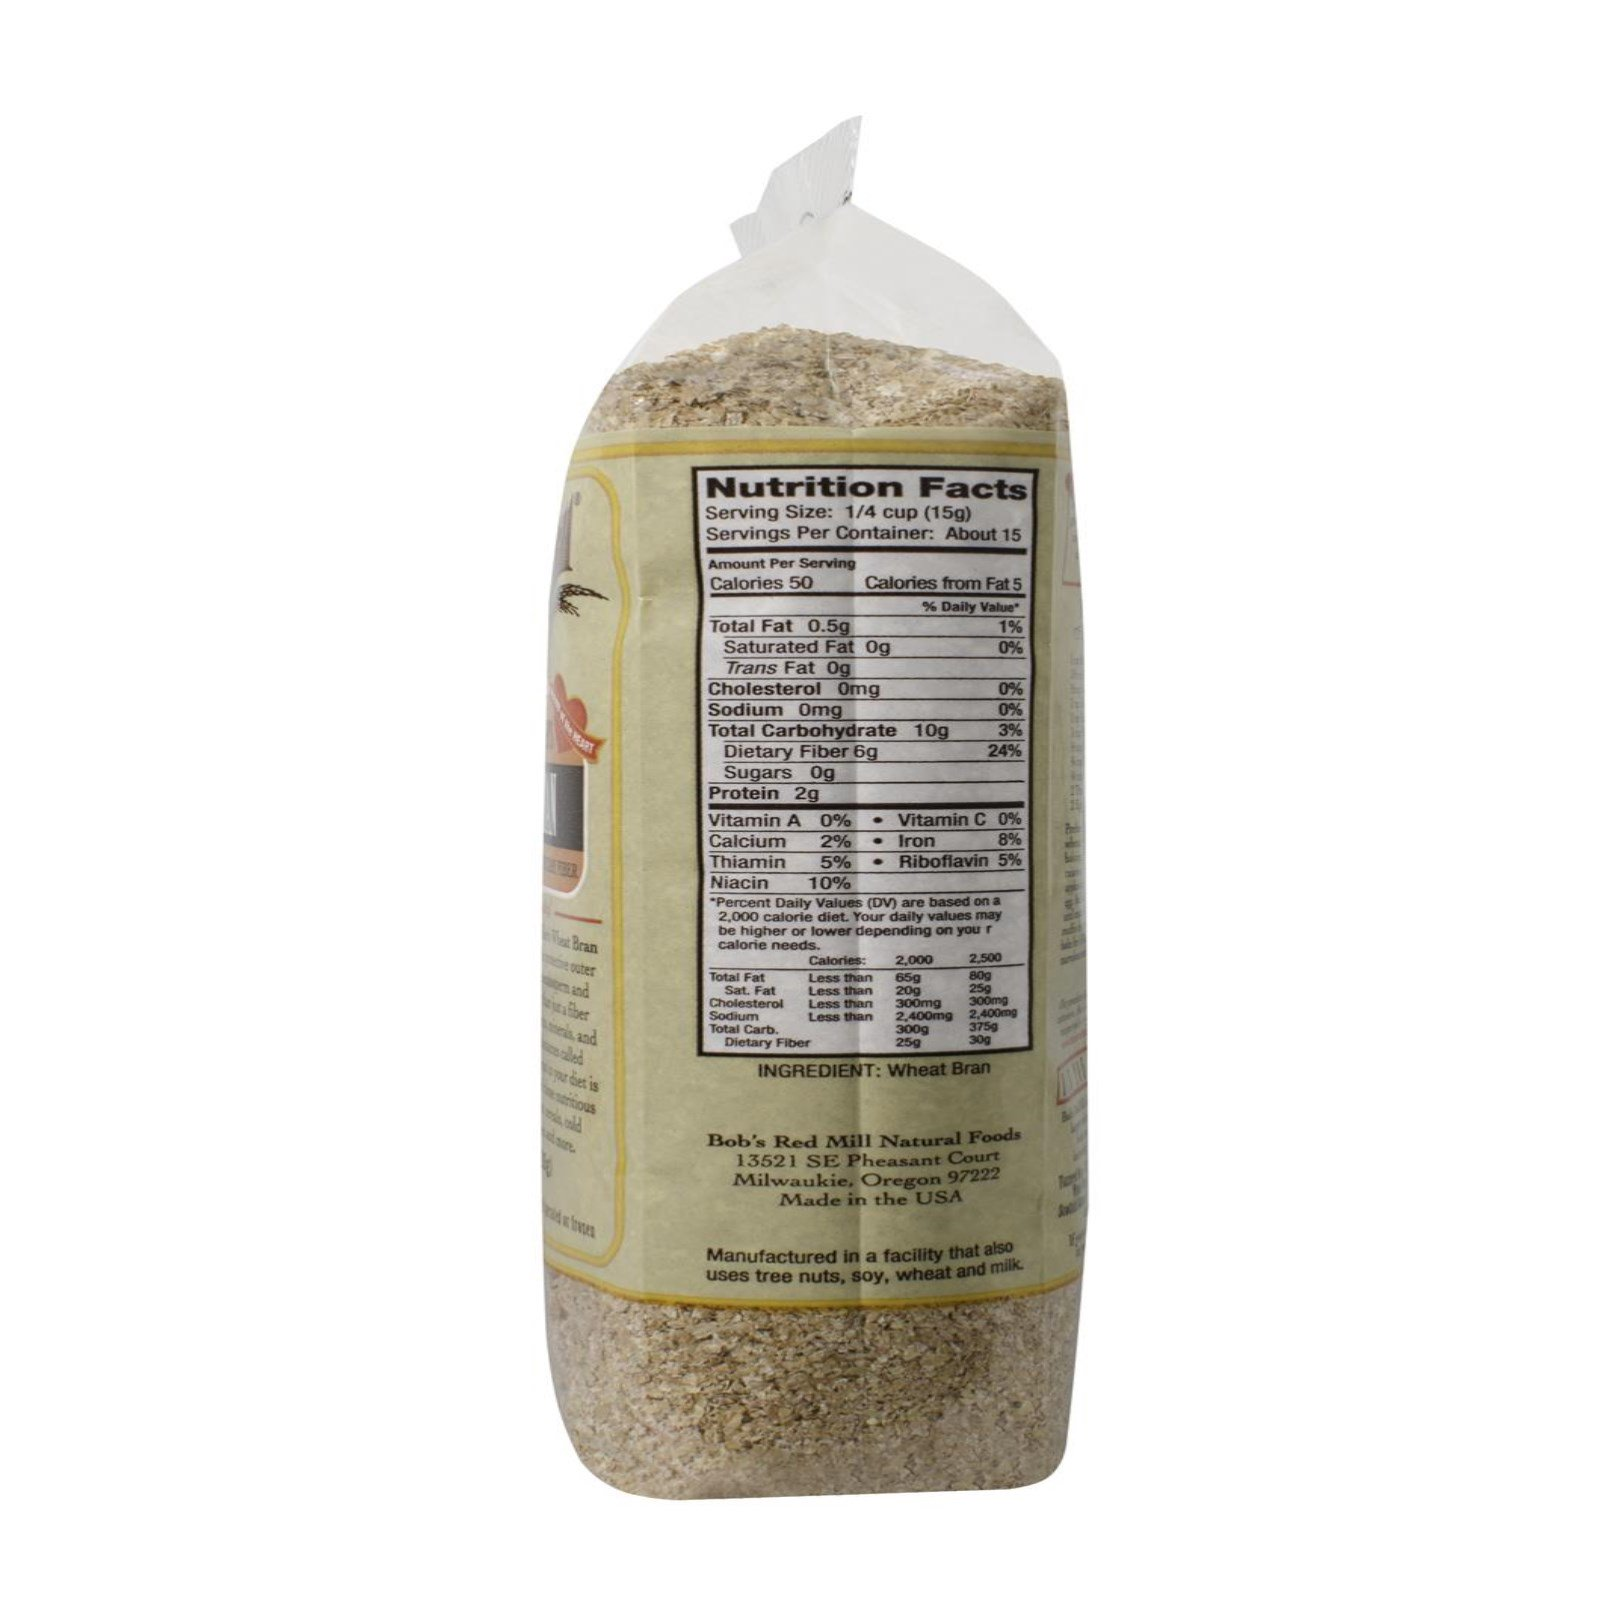 Bob's Red Mill, Unprocessed Miller's Wheat Bran, 8 oz (226 g) (Discontinued  Item)